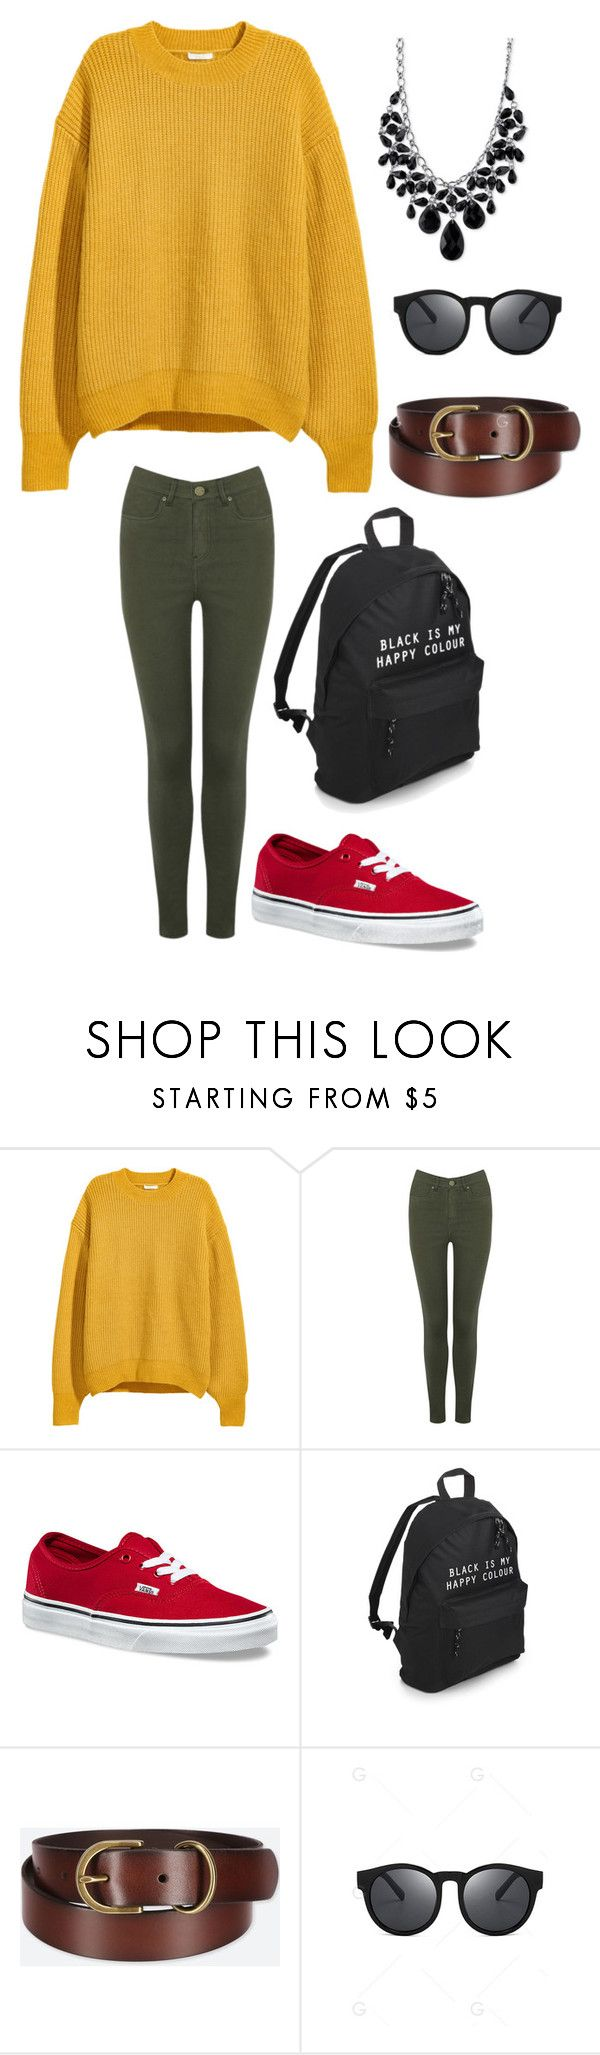 """""""Untitled #4366"""" by kaitoven on Polyvore featuring Oasis, Vans, Uniqlo and 2028"""